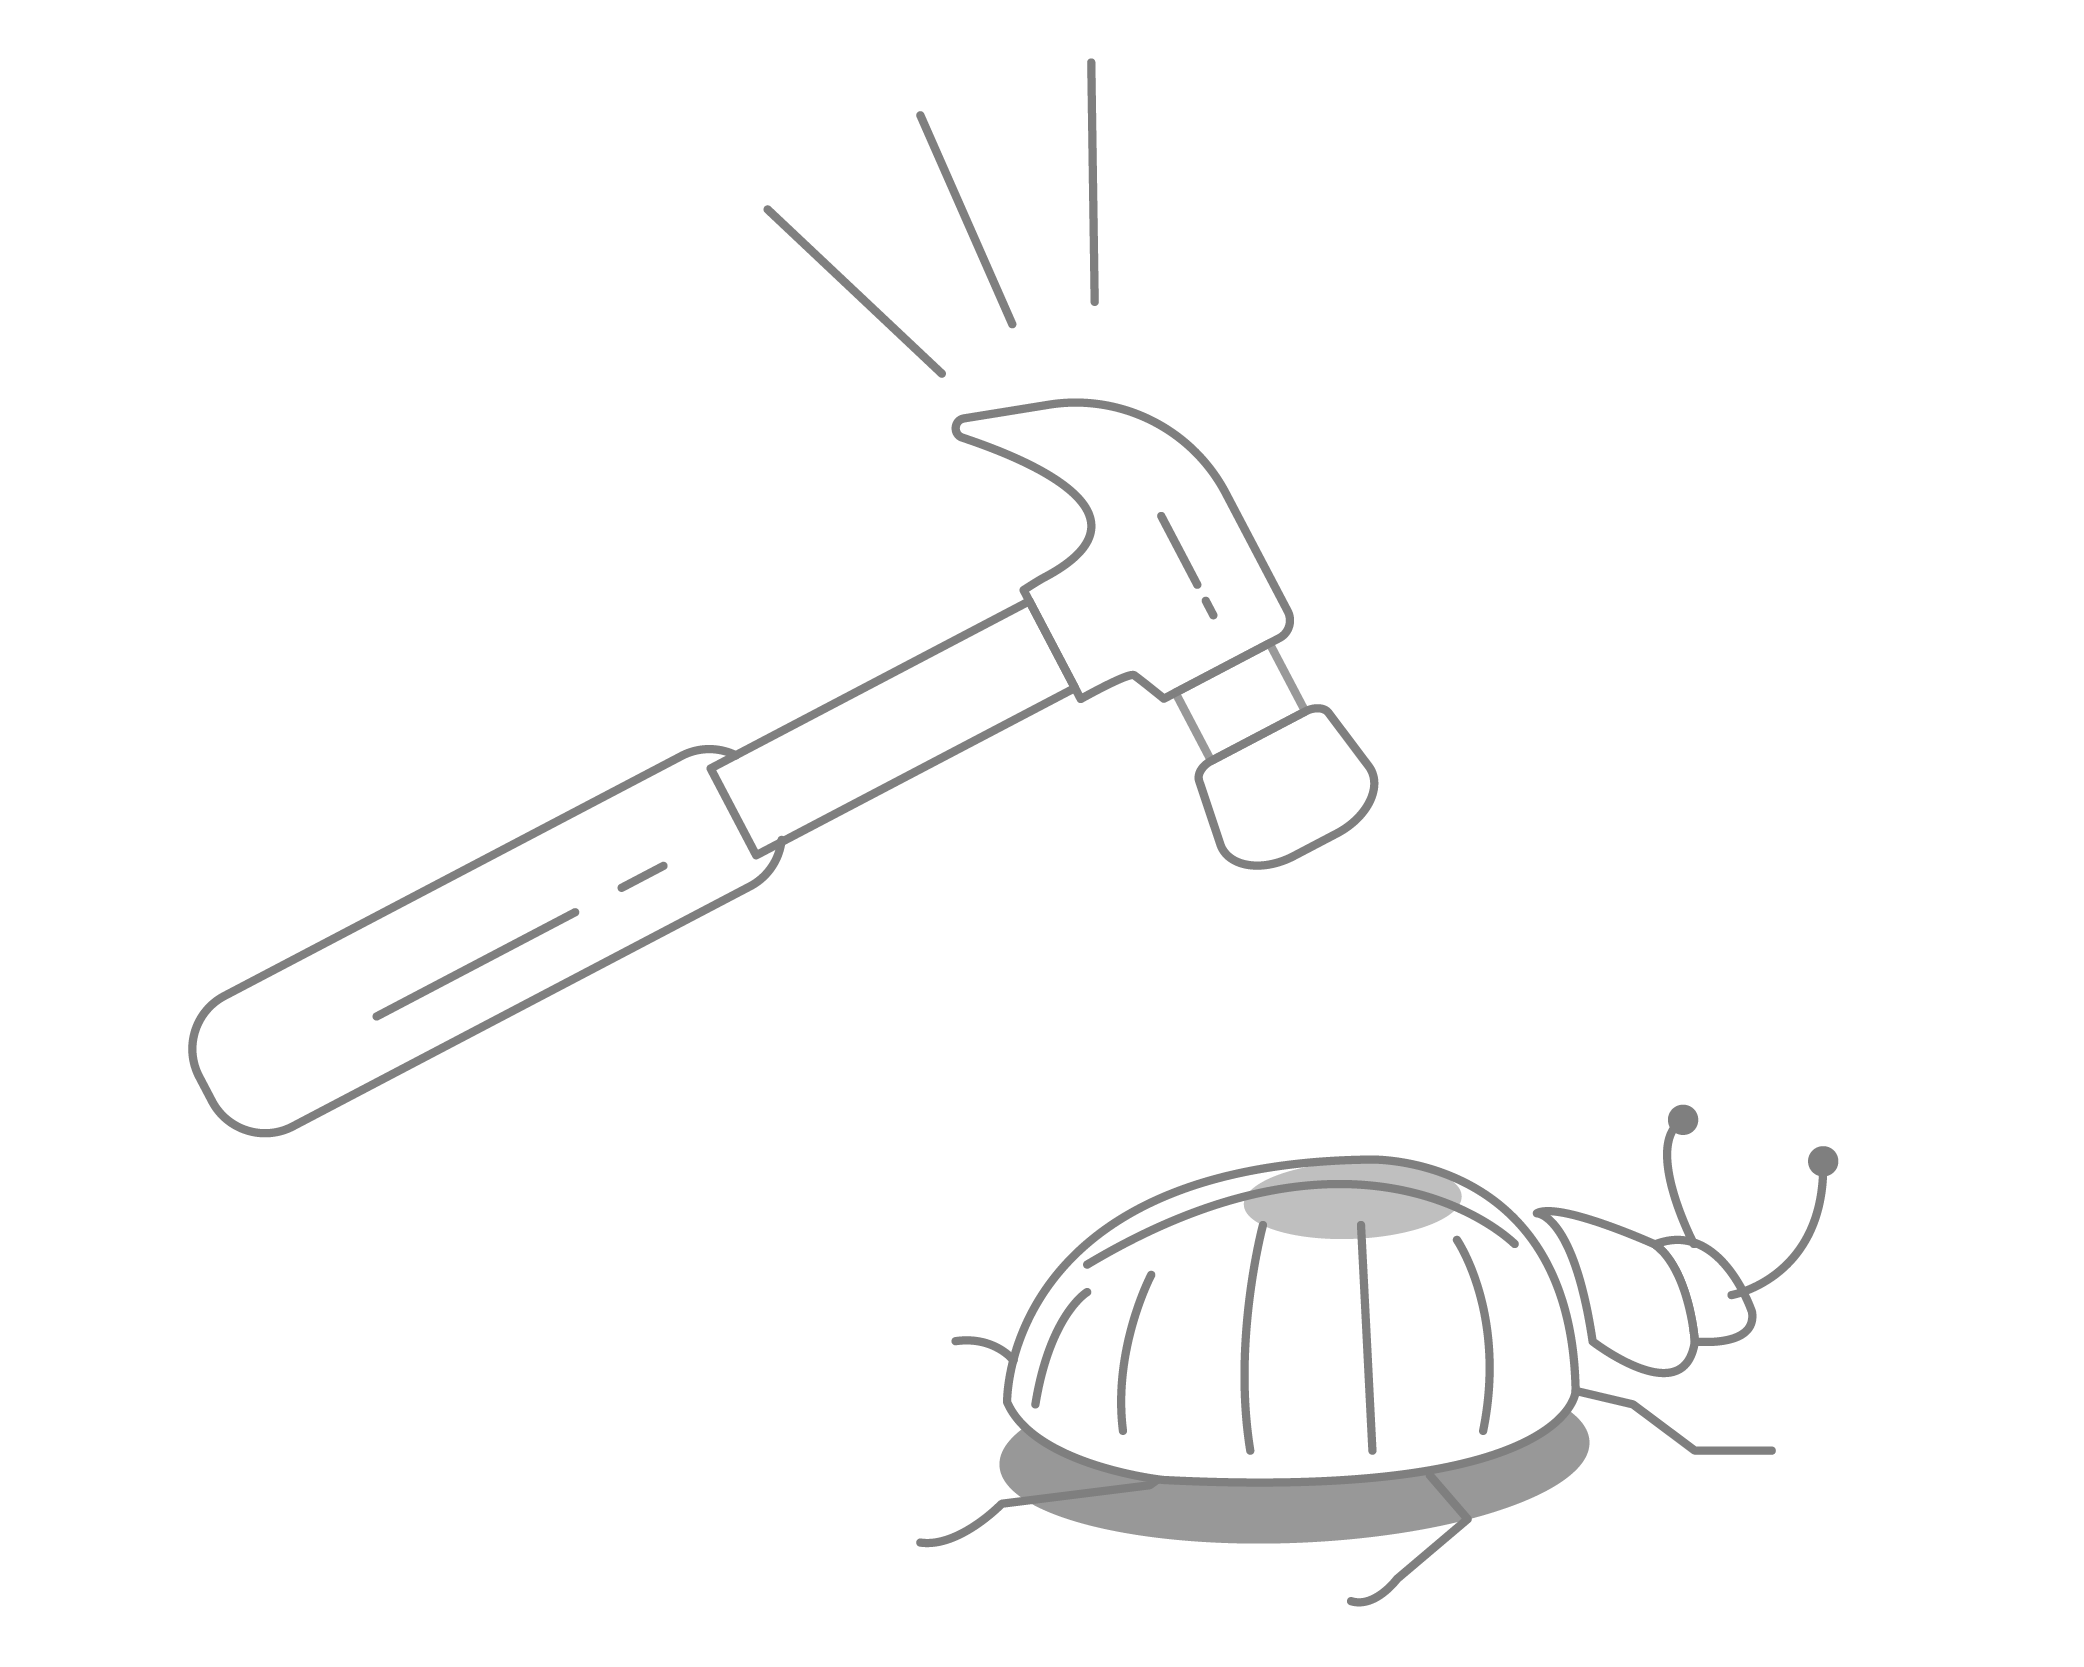 A hammer above a bug